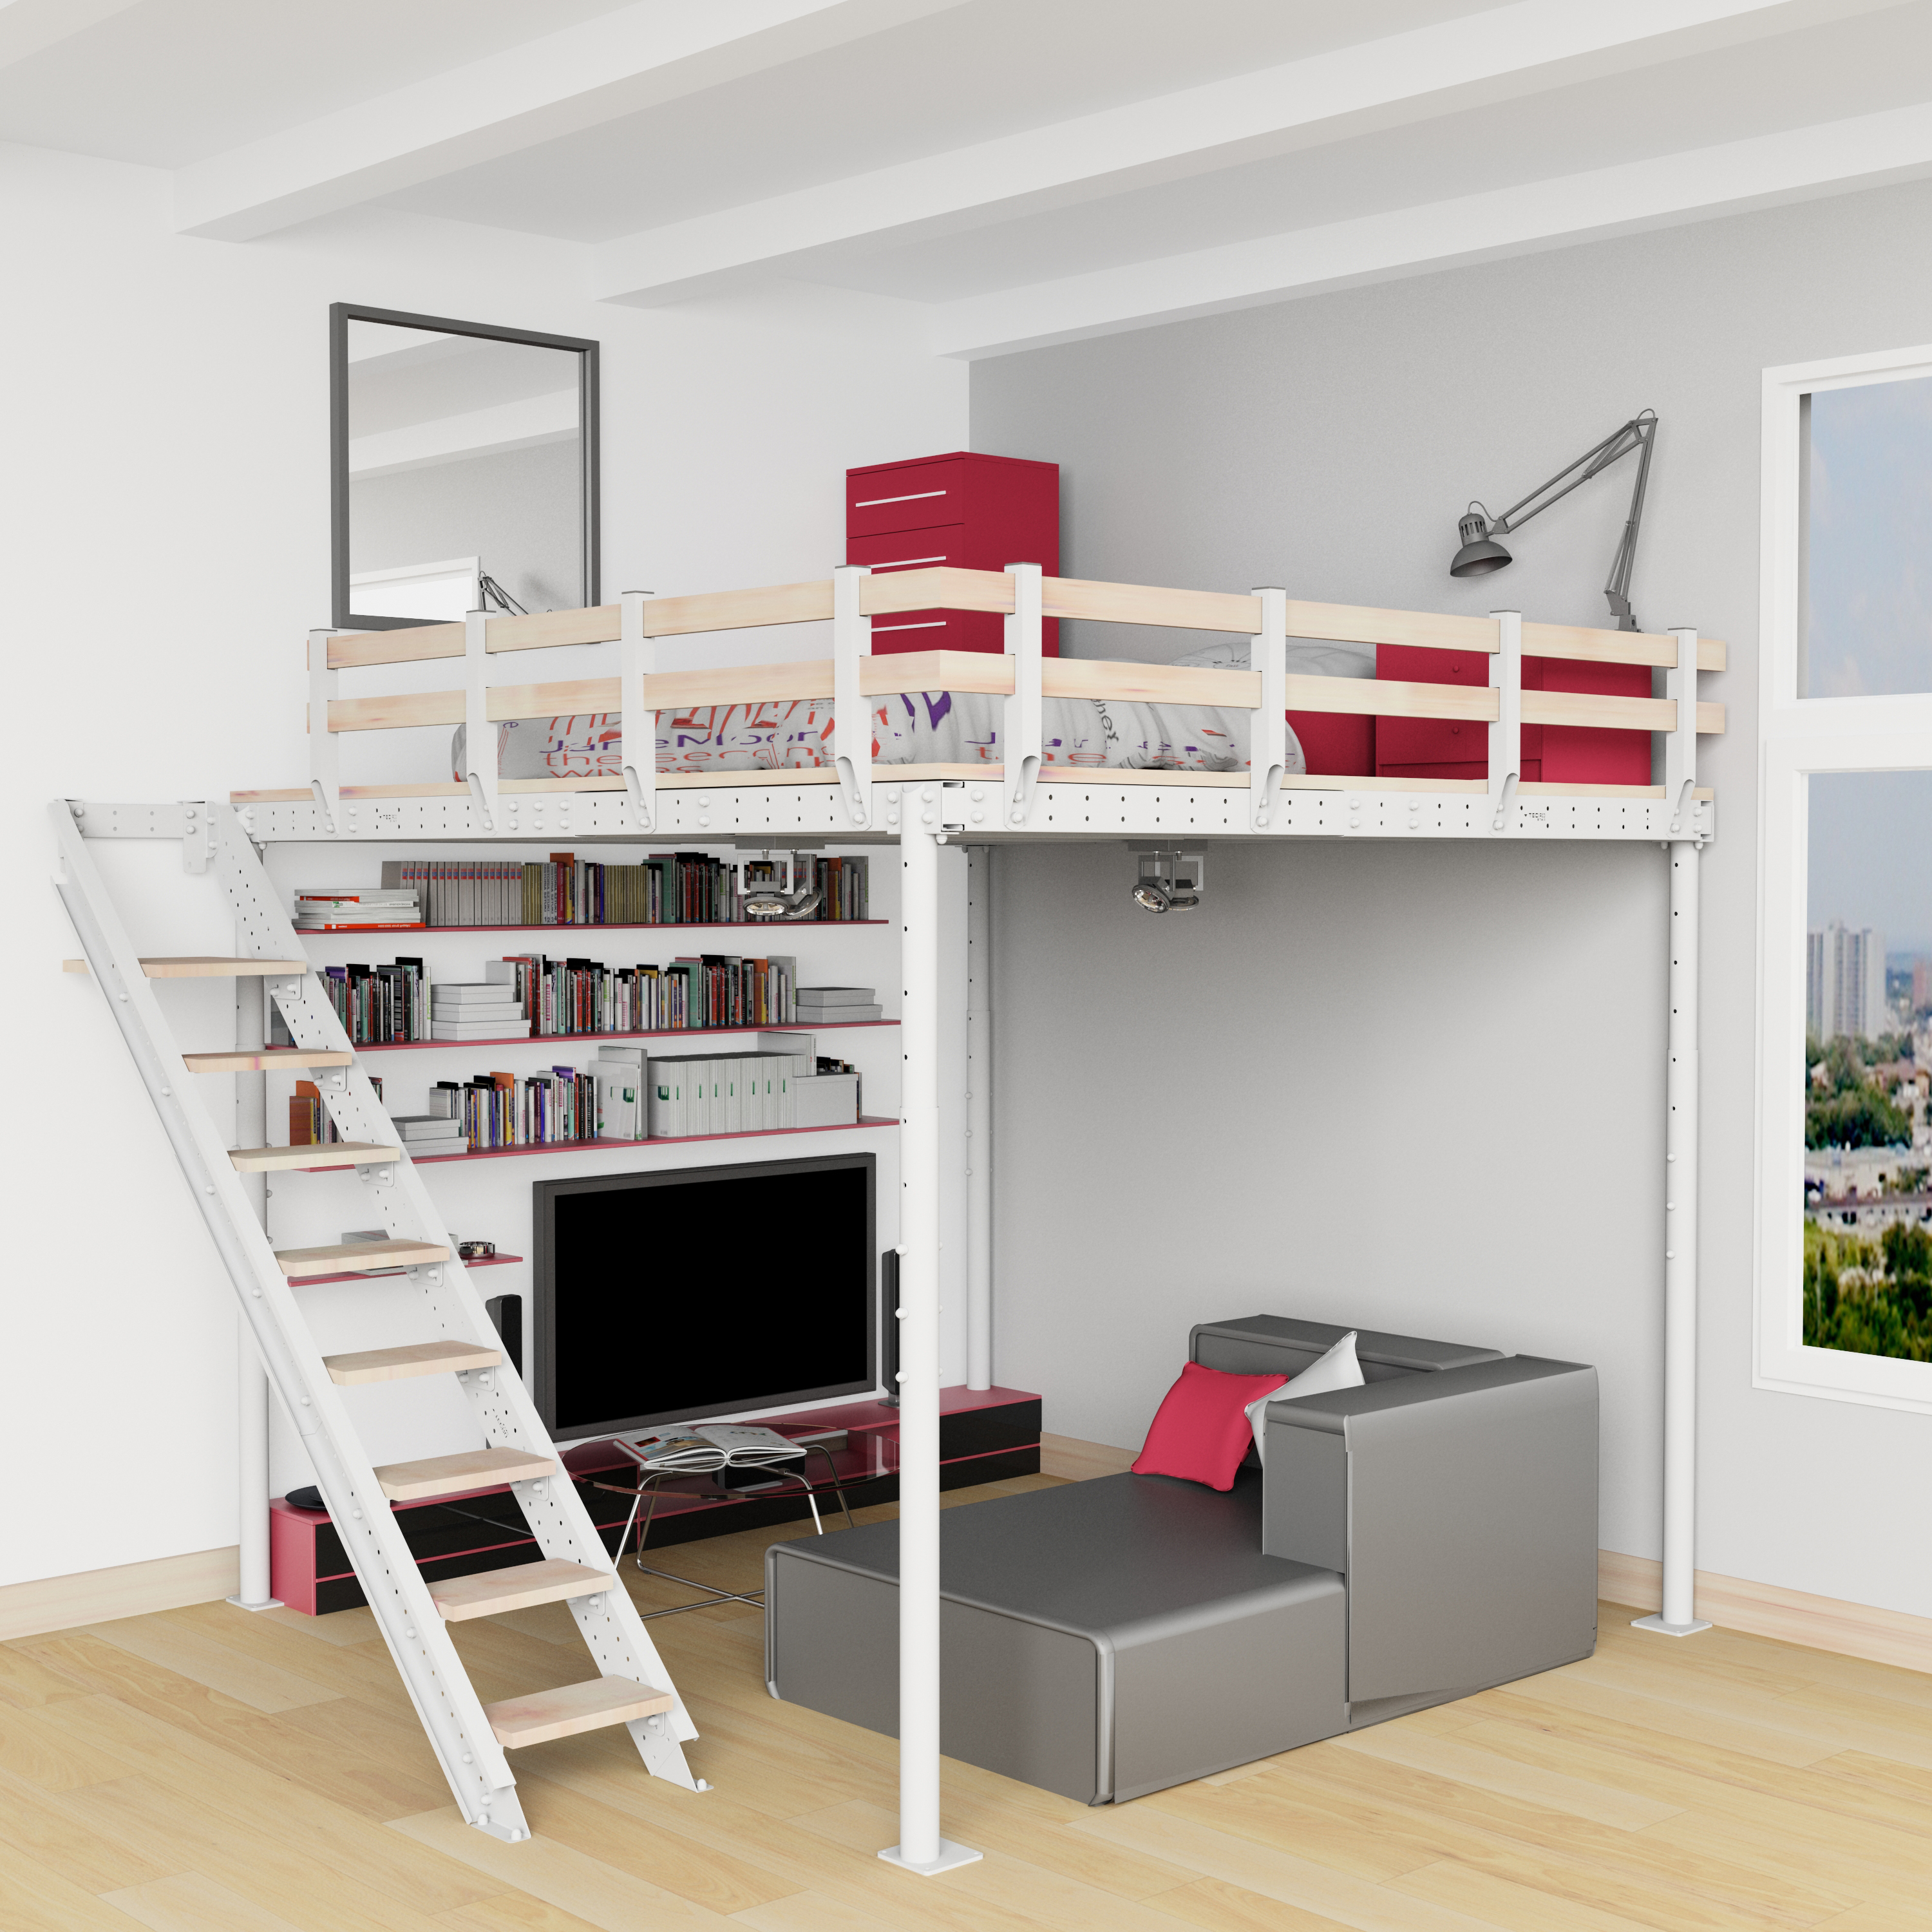 Diy loft bed kit expand furniture - Bed kind met mezzanine kantoor ...